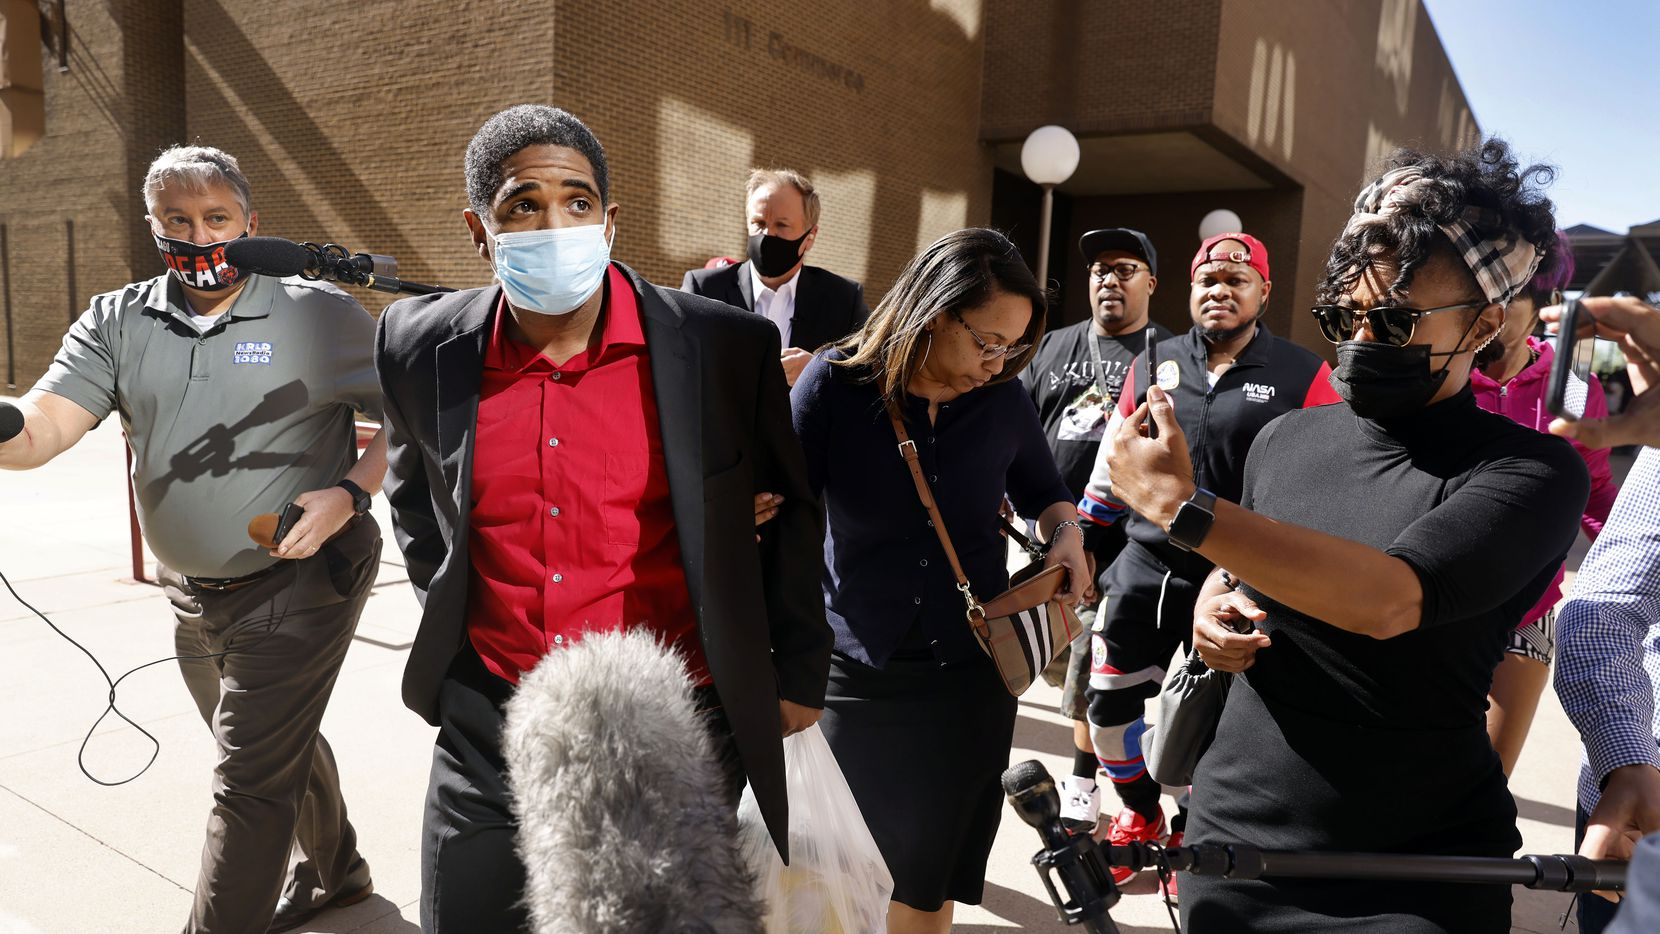 With his wife Eboni Samuel Riser by his side, former Dallas police officer Bryan Riser walks out of Lew Sterrett Justice Center after Dallas County Criminal Court Judge Audrey Moorehead ordered his release earlier in Dallas, Wednesday, April 7, 2021. Riser was originally charged with two counts of capital murder and was accused of ordering hits on two people. (Tom Fox/The Dallas Morning News)